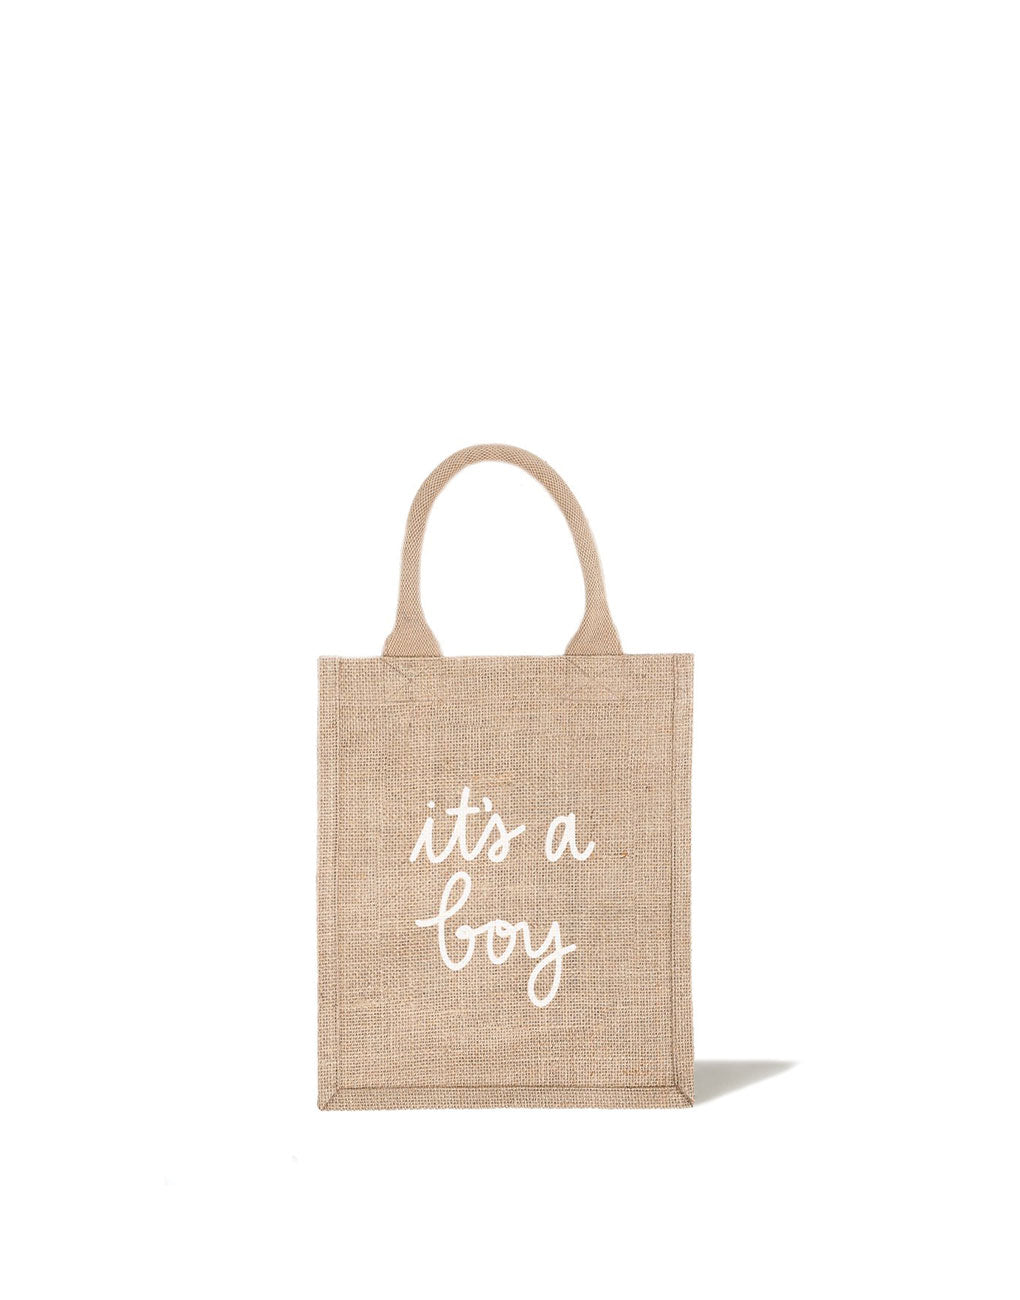 Medium It's A Boy Reusable Gift Tote In White Font | The Little Market